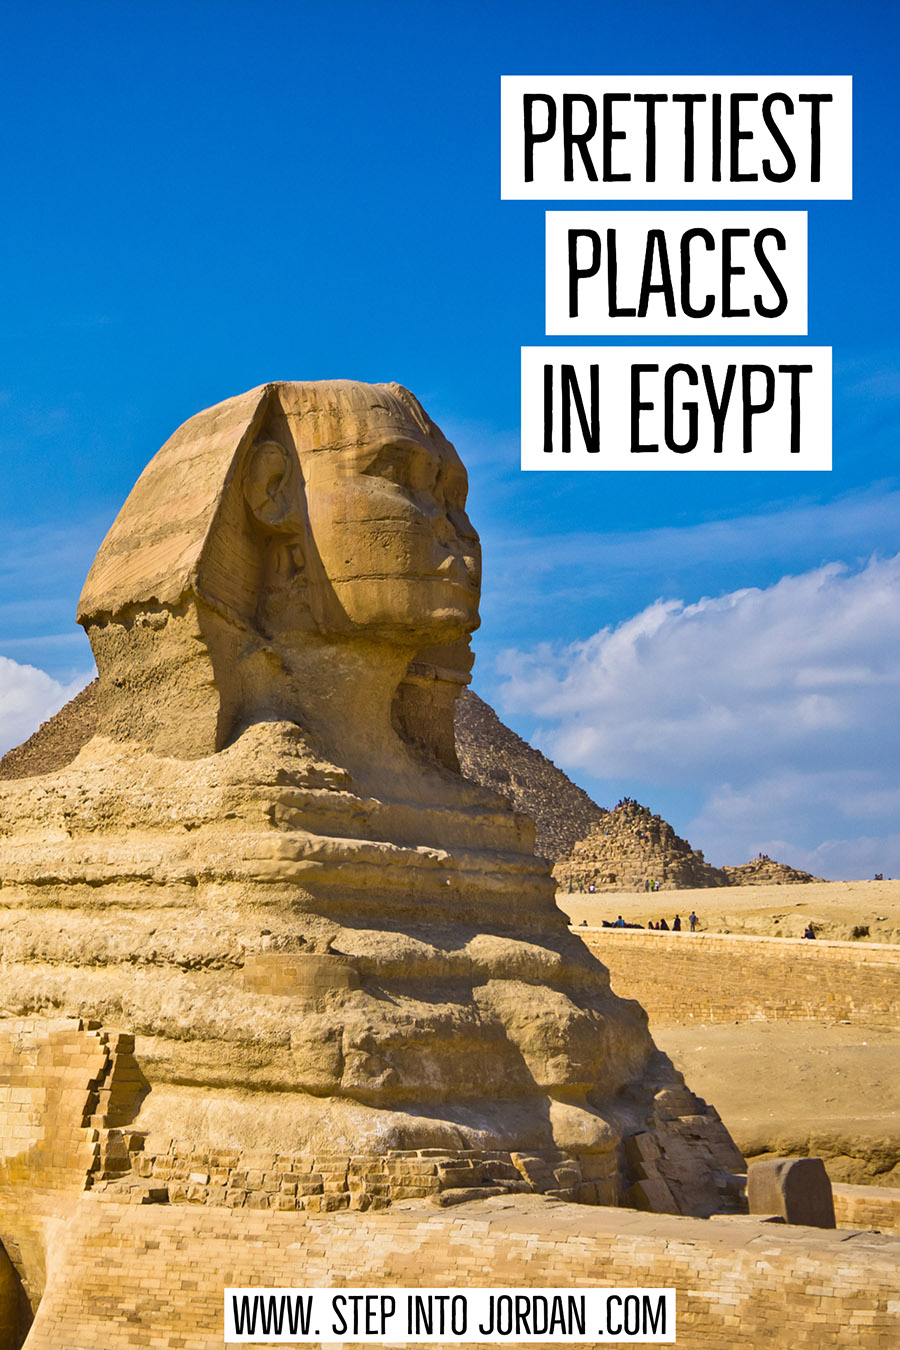 Pretty Places in Egypt